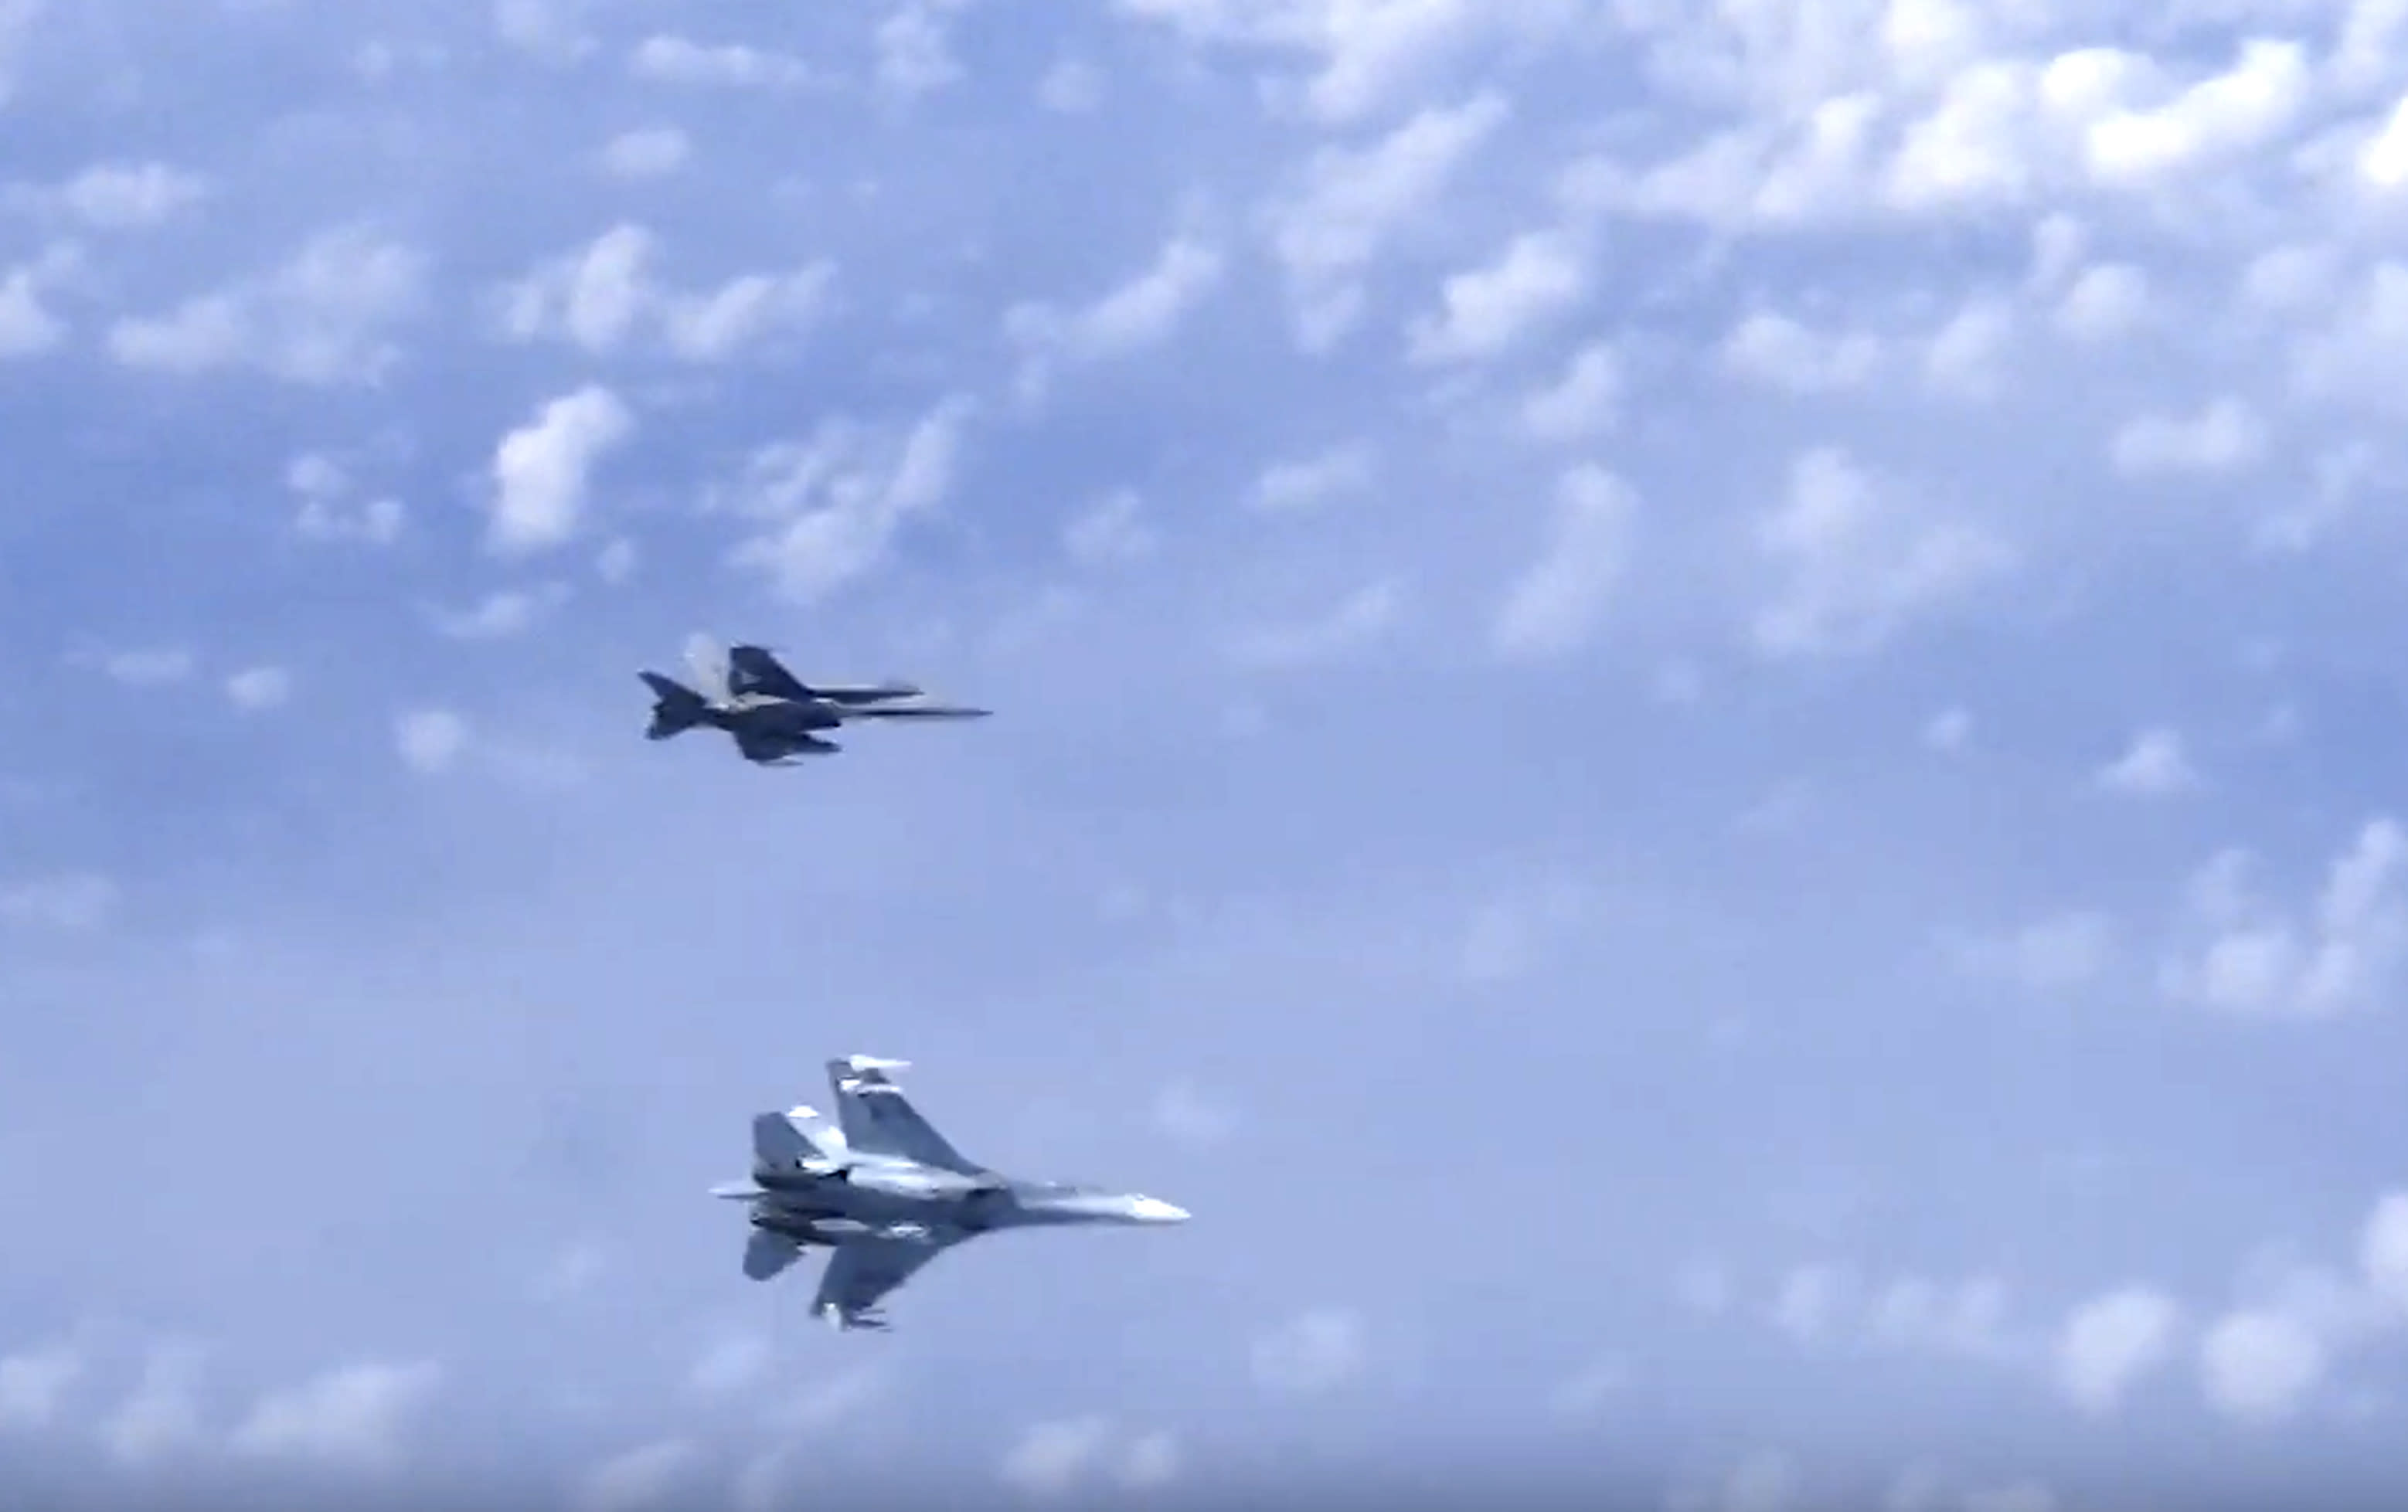 Russian jet chases North Atlantic Treaty Organisation  plane away from defense minister's aircraft